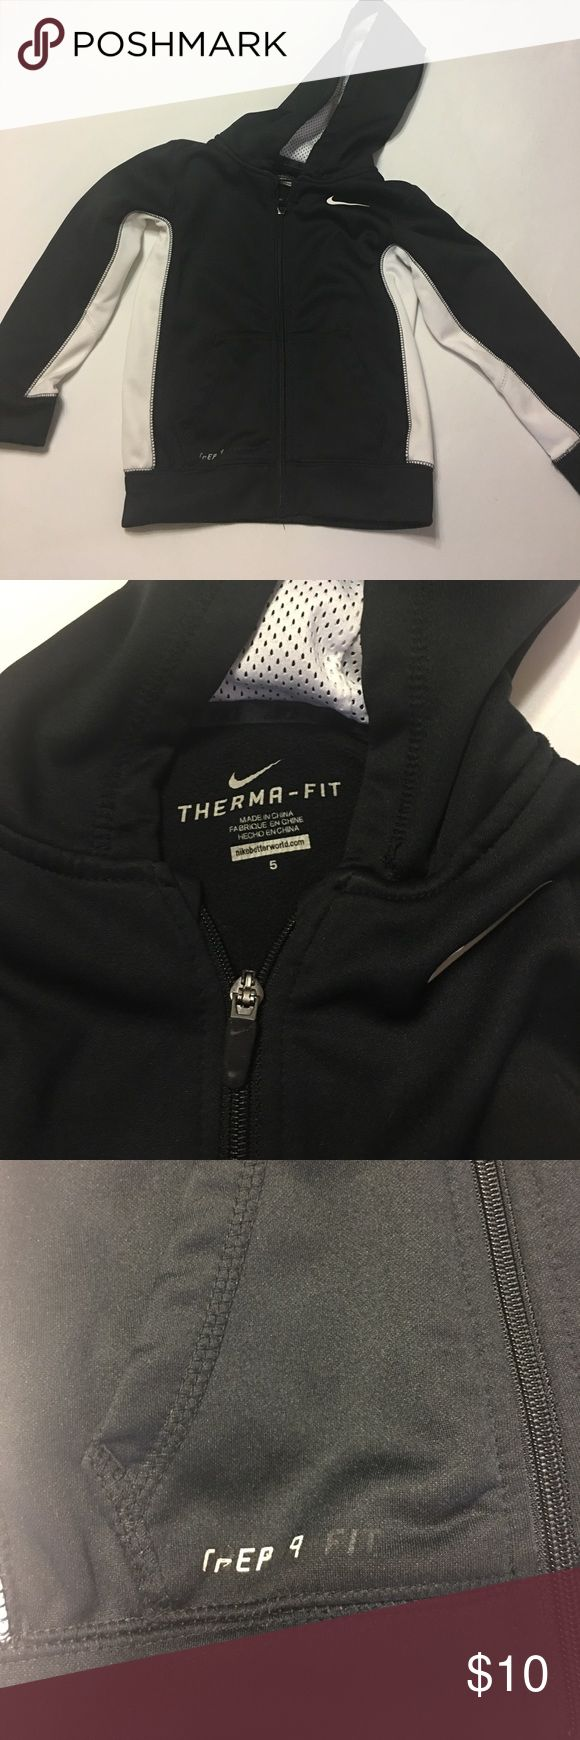 Nike zip up hoodie Black and white nike zip up hoodie. Therma fit. Boys size 5. In great condition except some of the writing on the bottom of jacket has peeled. See third picture Jackets & Coats